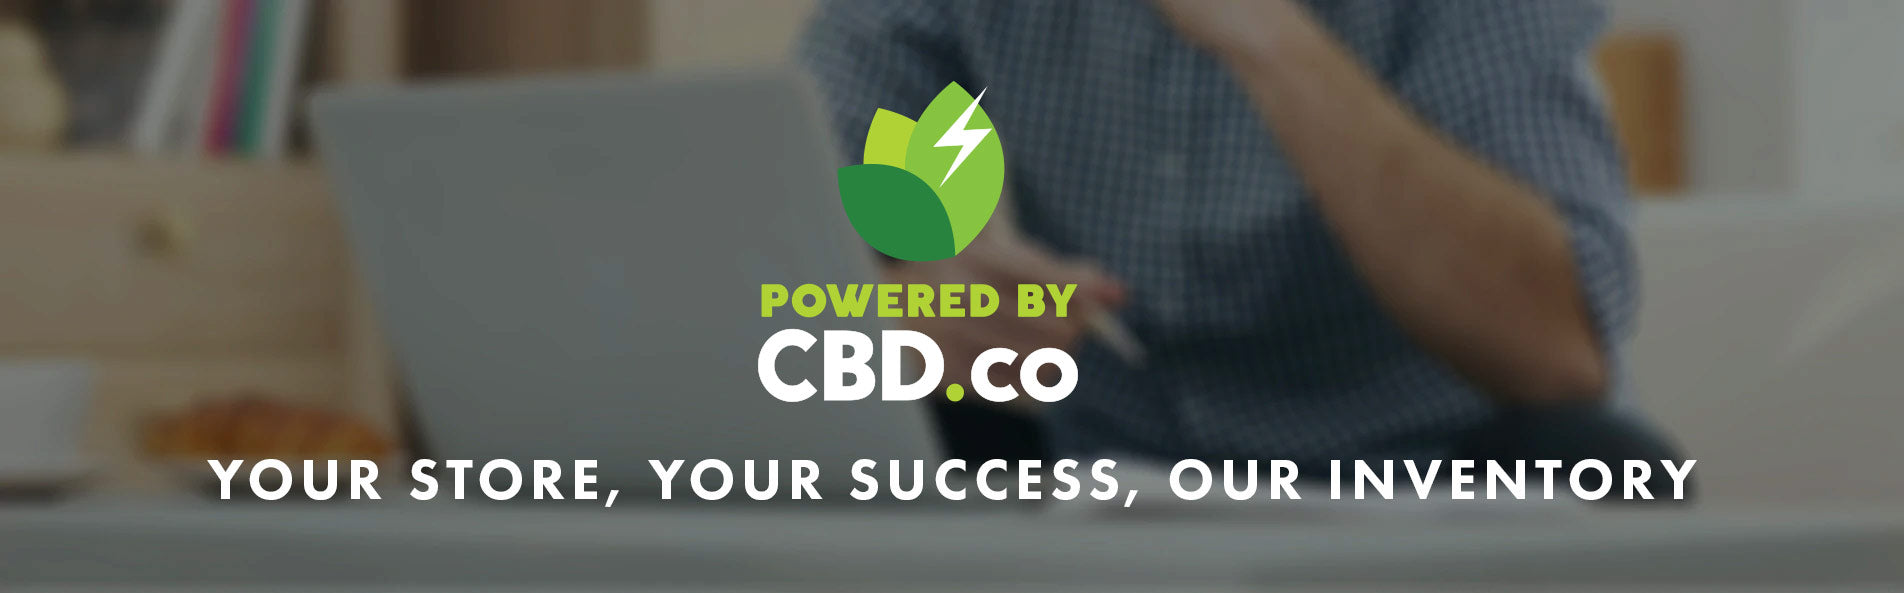 Thousands of lab-tested CBD products at your fingertips